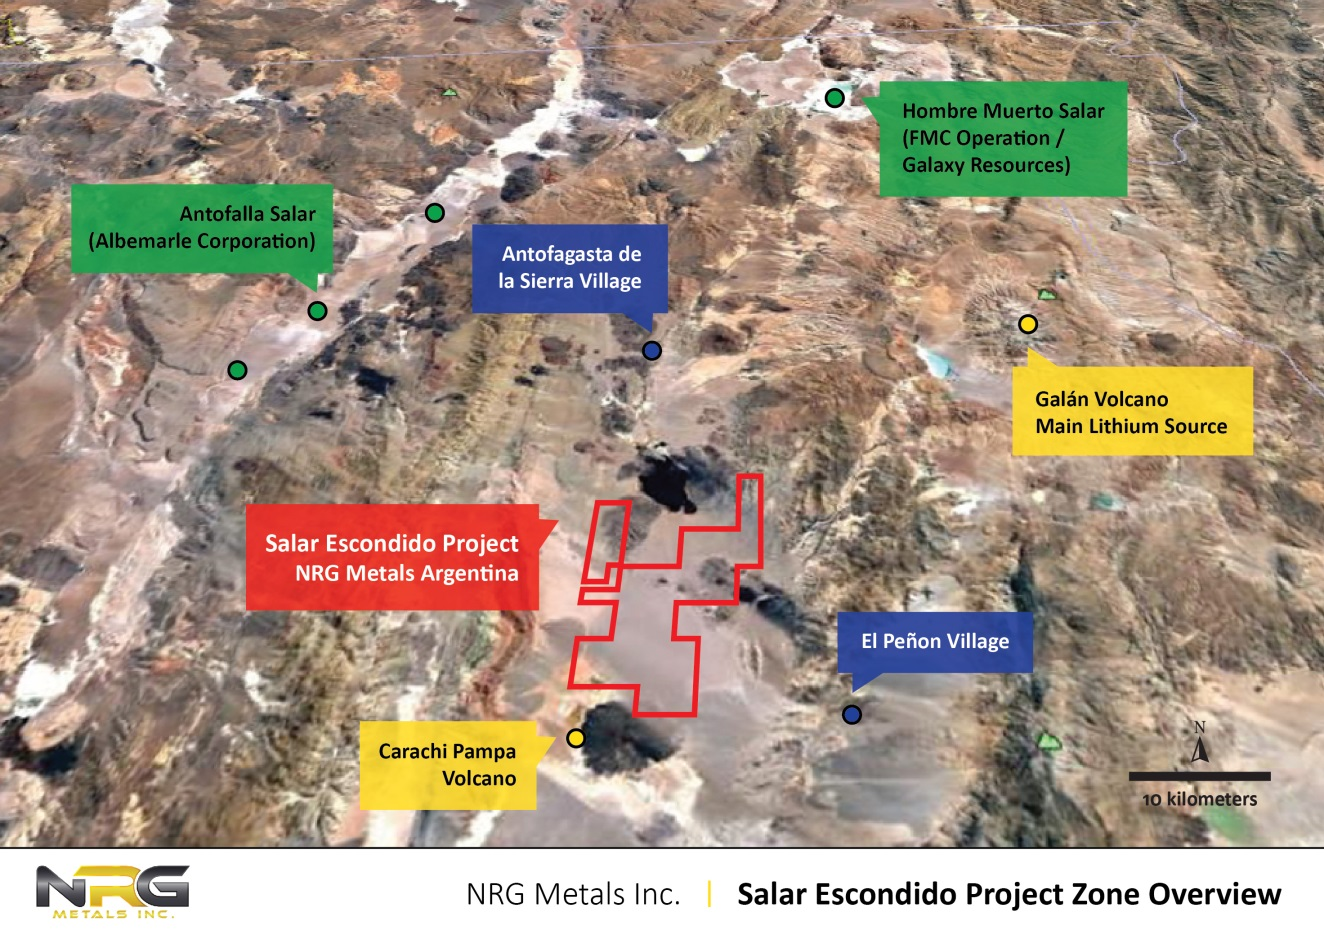 Salar Escondido Project Zone Overview